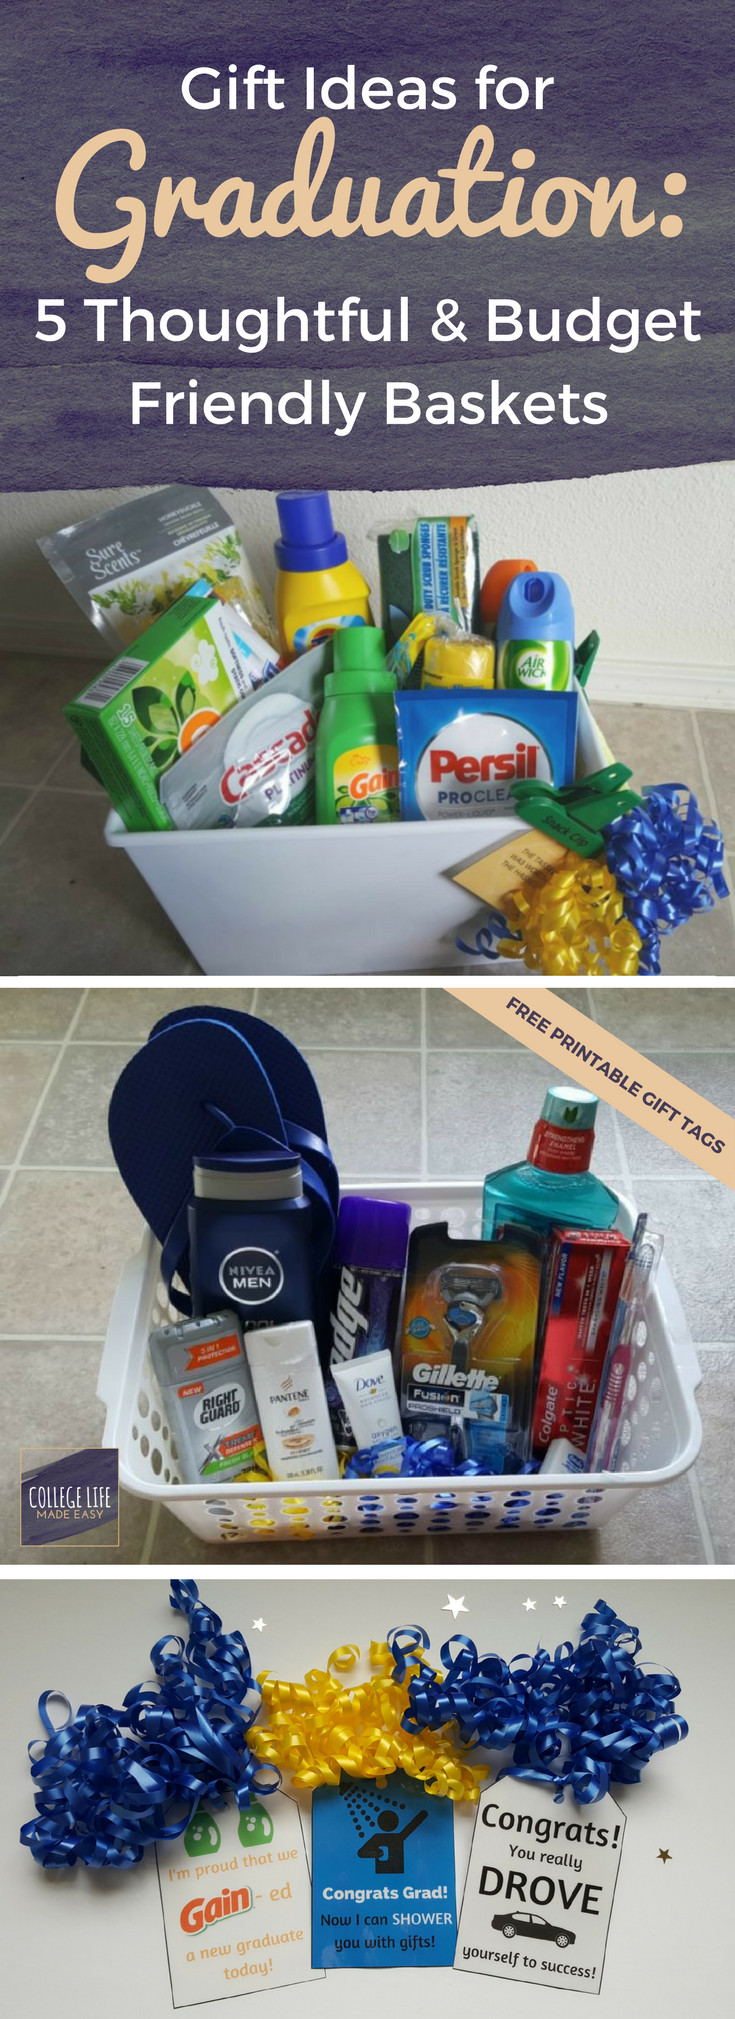 Best ideas about College Grad Gift Ideas . Save or Pin Gift Ideas for Graduation 5 Thoughtful & Bud Friendly Now.